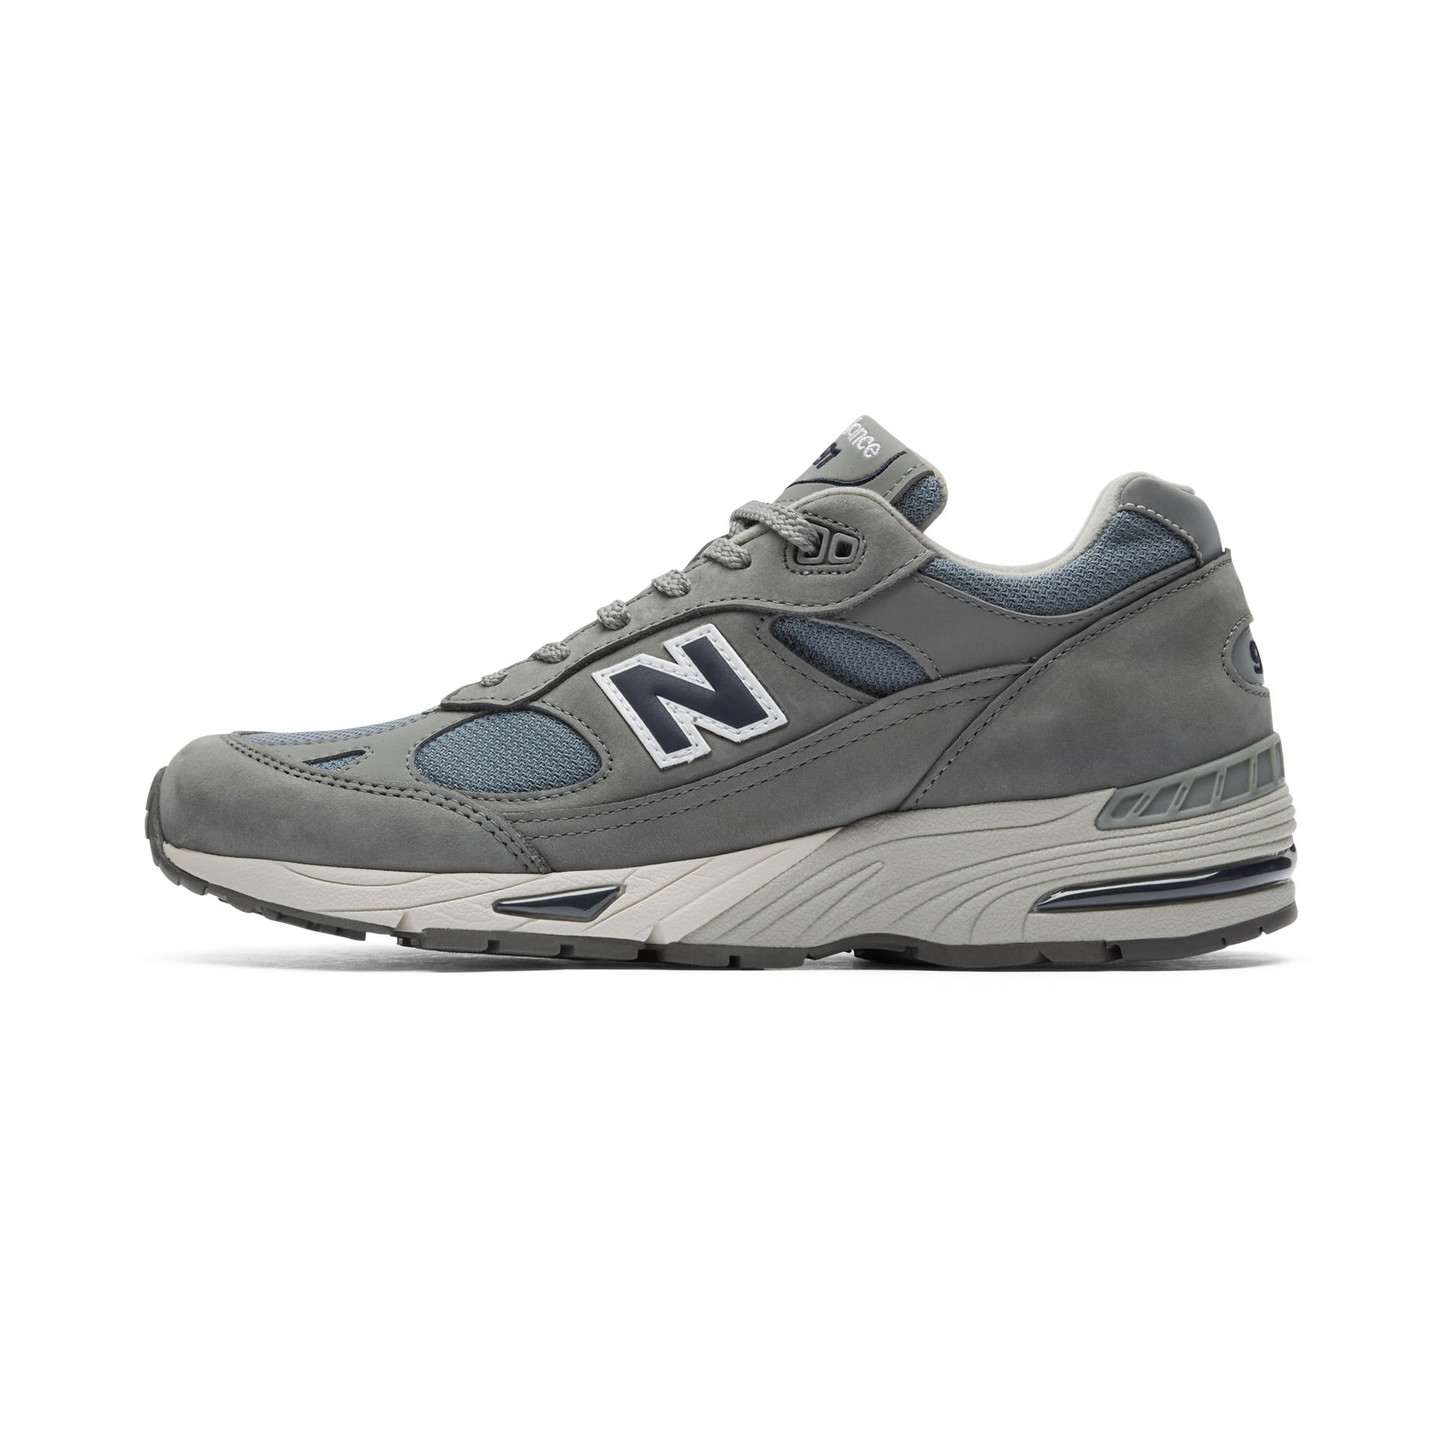 New Balance M991 NGN - Made in England Grey / Navy M991NGN